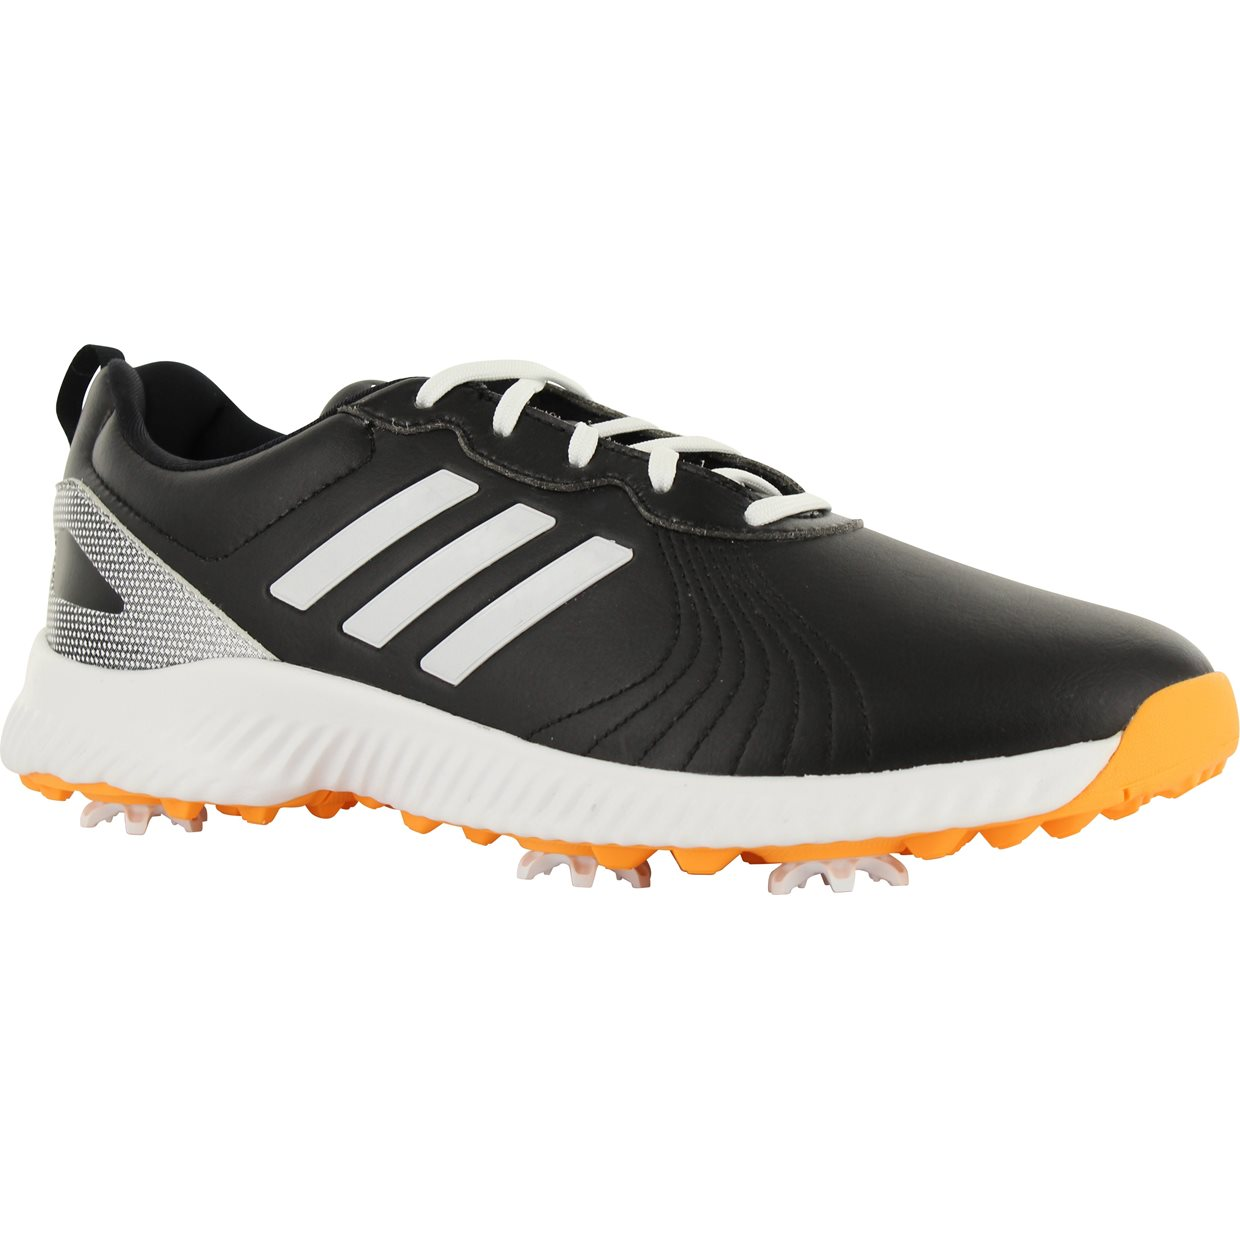 9e9123fe7 Adidas Response Bounce Ladies Golf Shoes at GlobalGolf.com